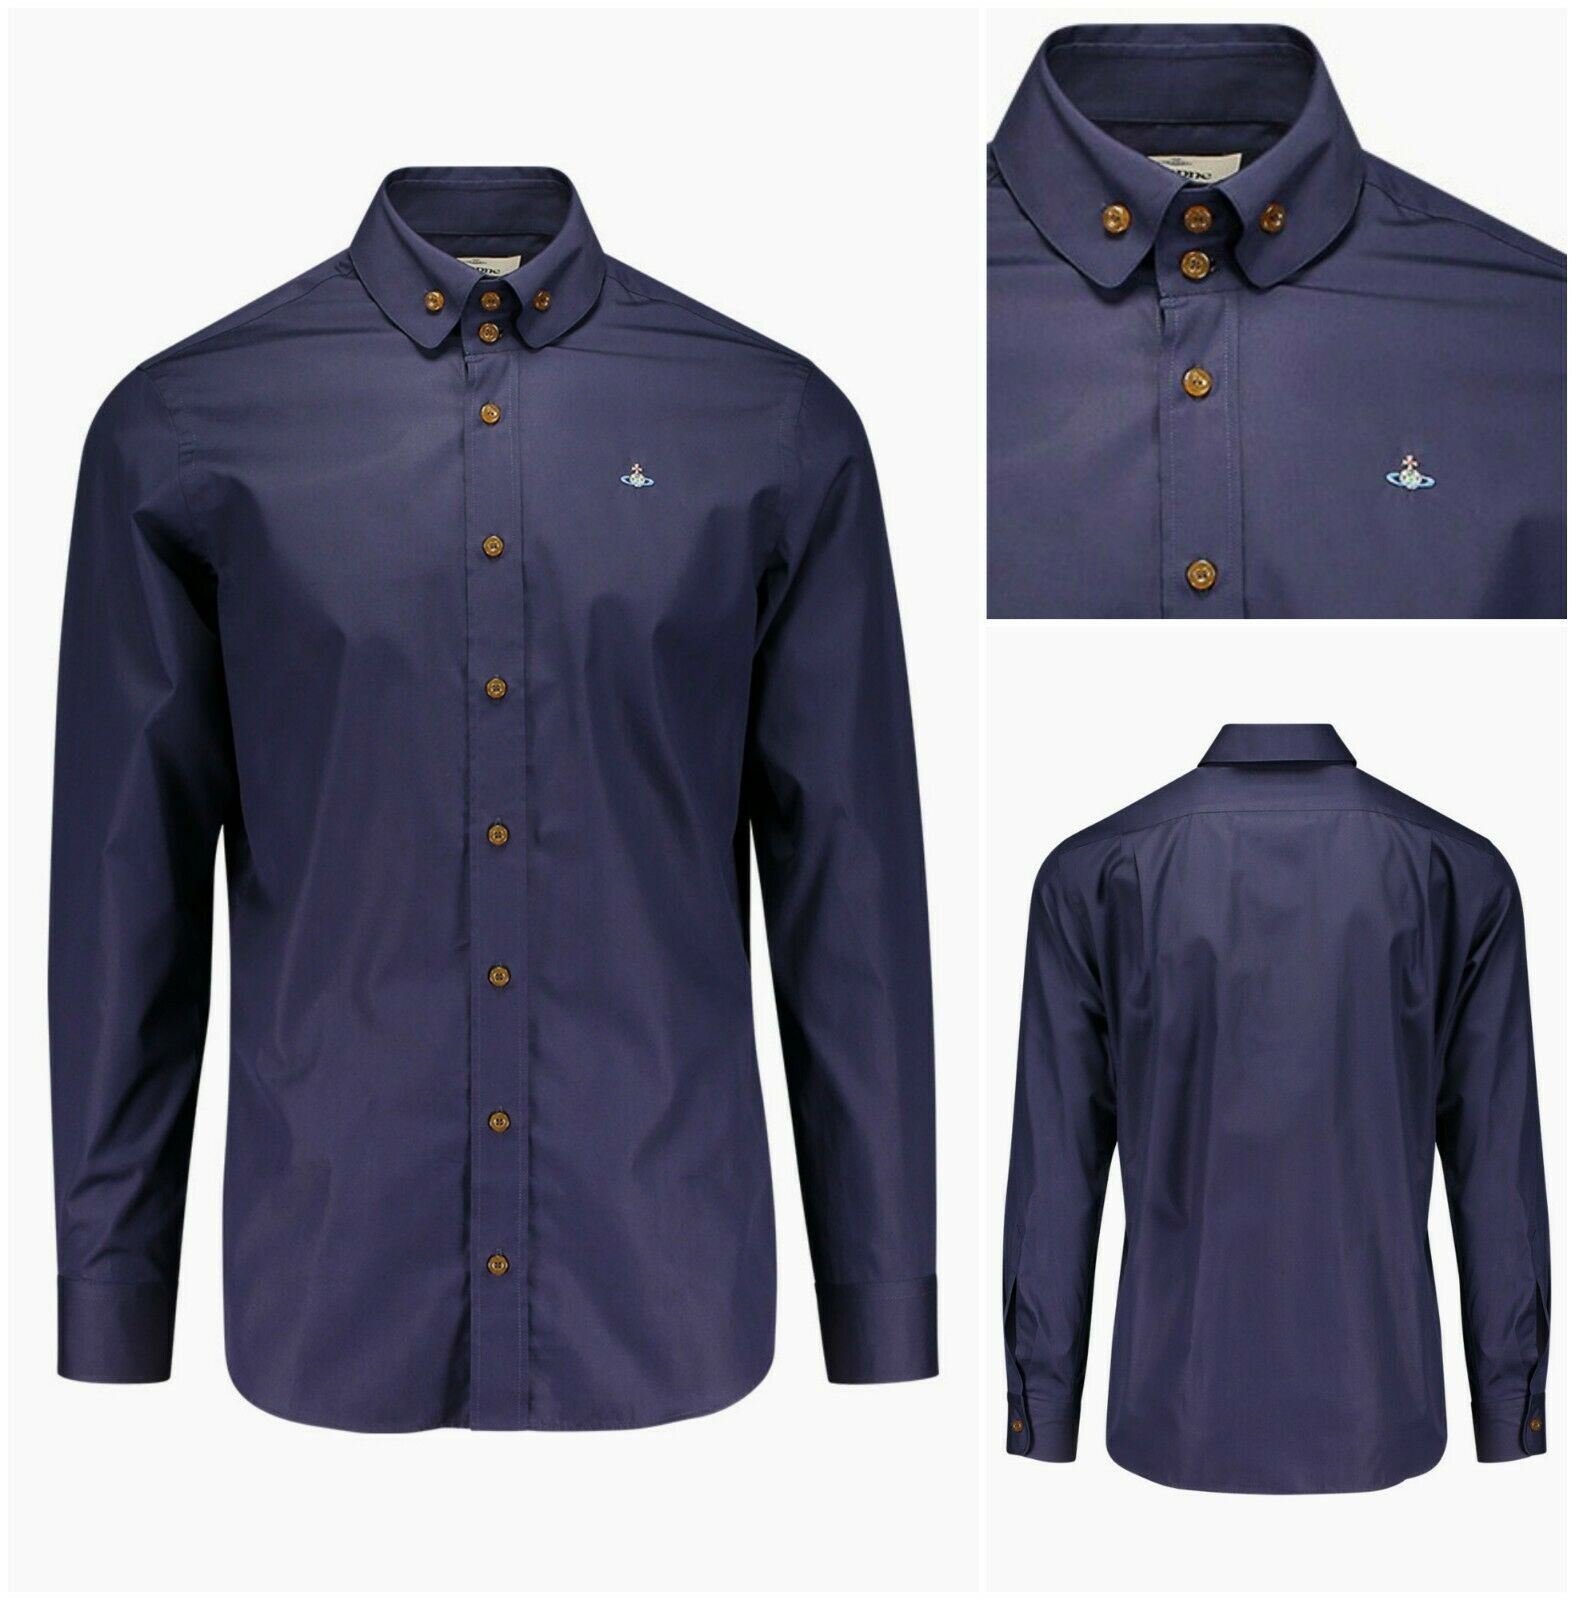 AUTHENTIC VIVIENNE WESTWOOD NAVY KRALL CHEST ORB REGULAR FIT SHIRT. IT46 - SMALL